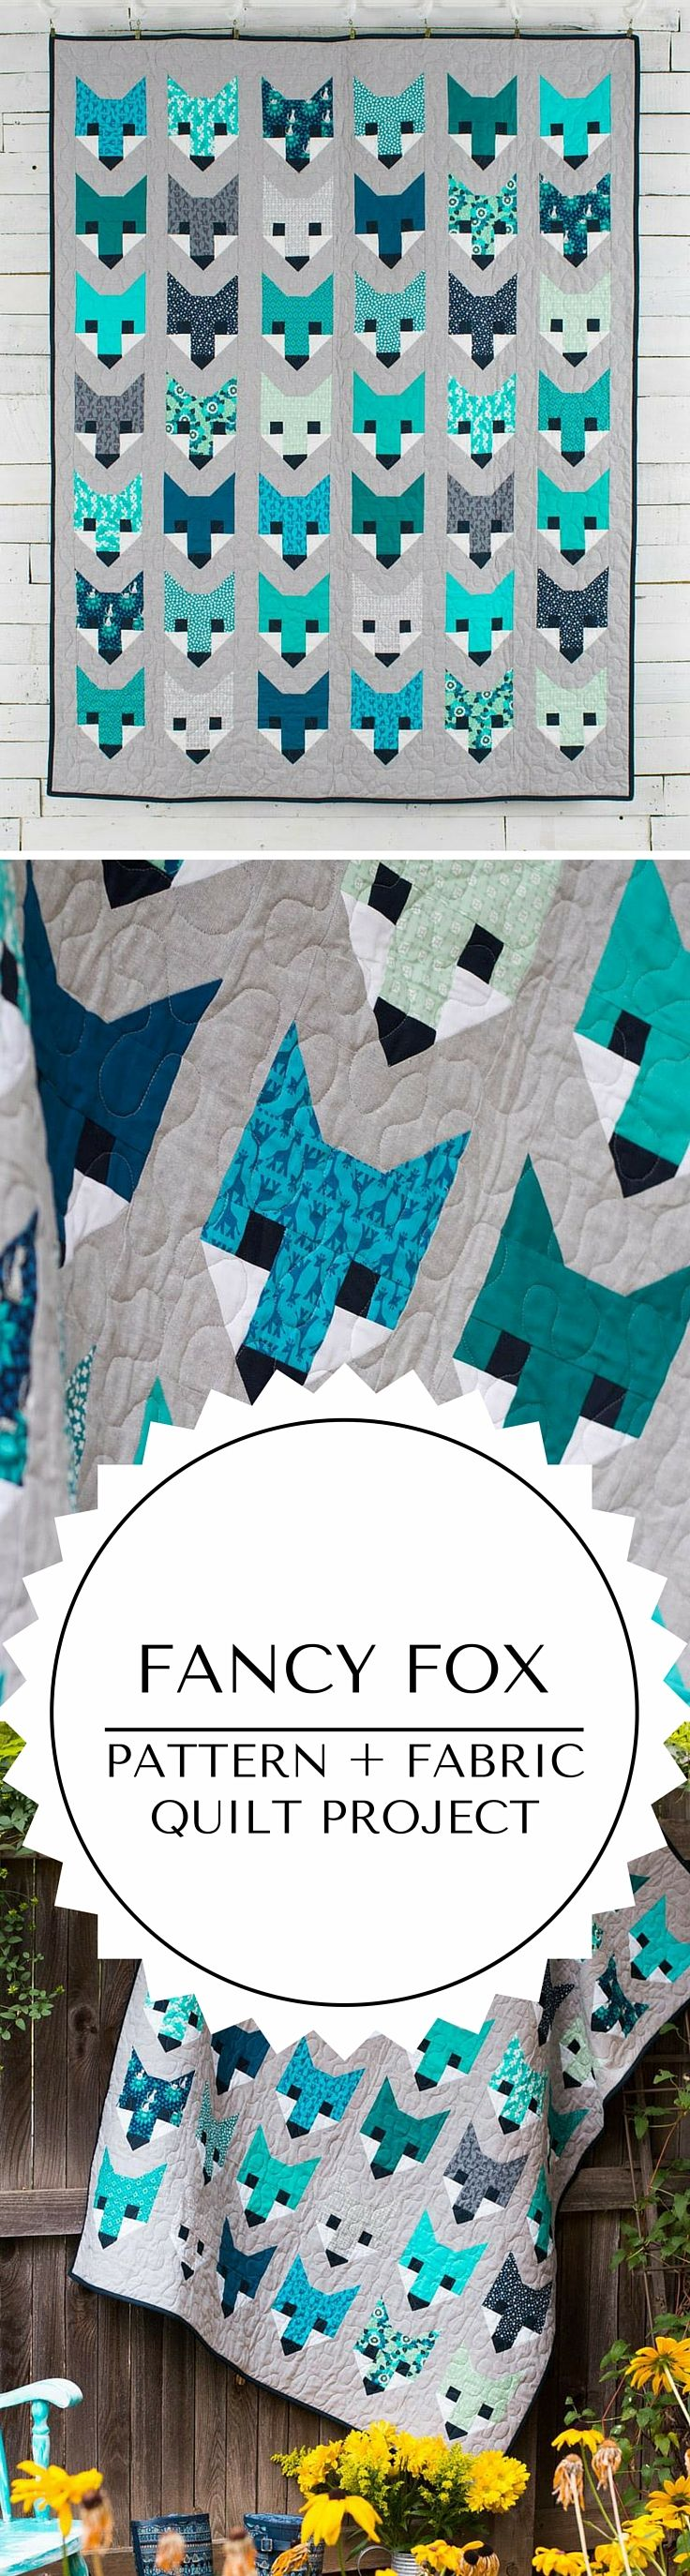 Fancy Fox quilt kit quilting project                                                                                                                                                                                 More